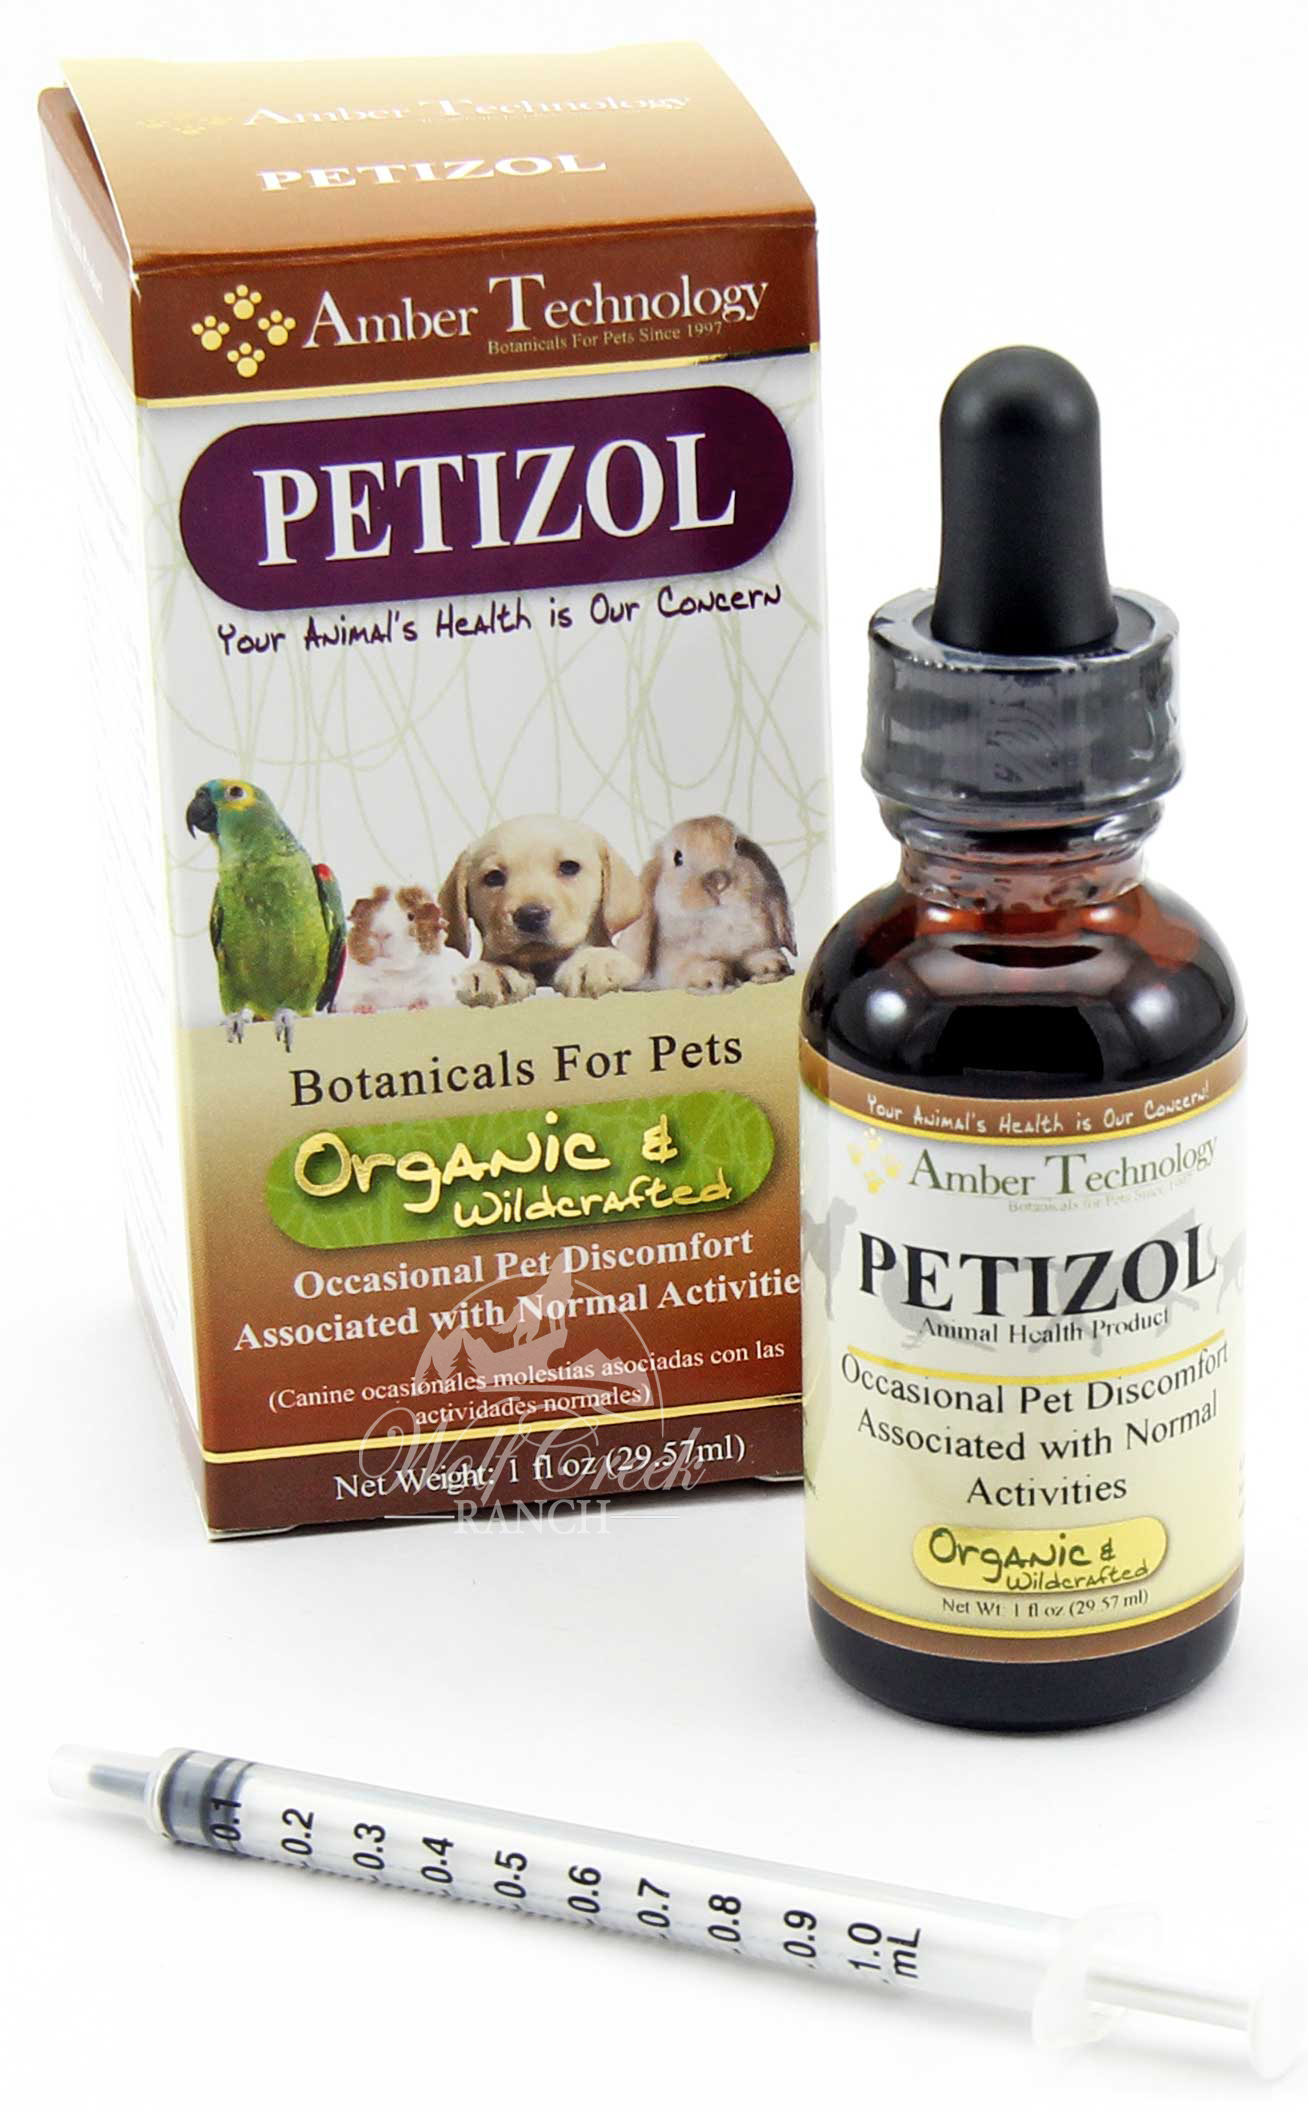 Petizol reduces fever, chest, pains, & inflammation.  Buy Petizol to relieve your pet's pain today!